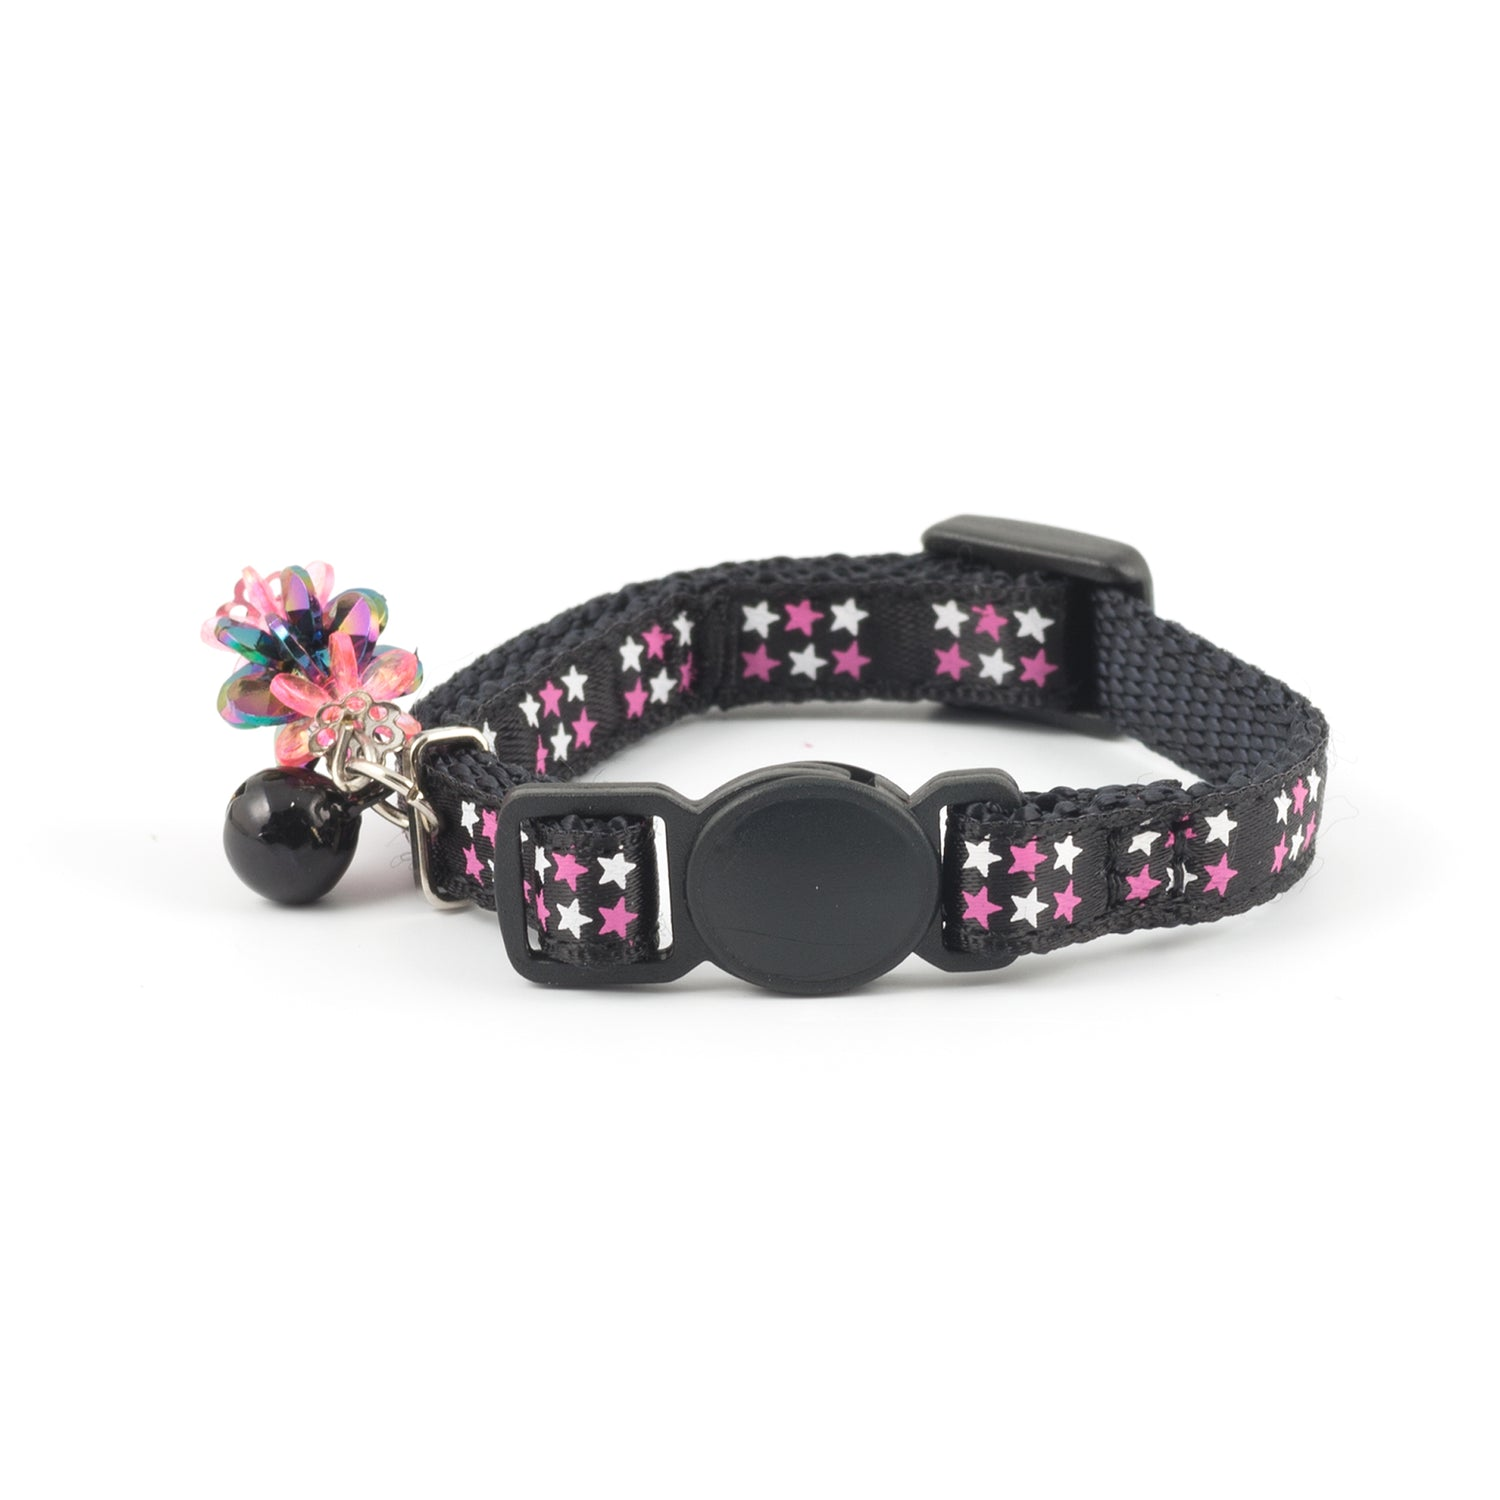 Star Safety Kitten Collar